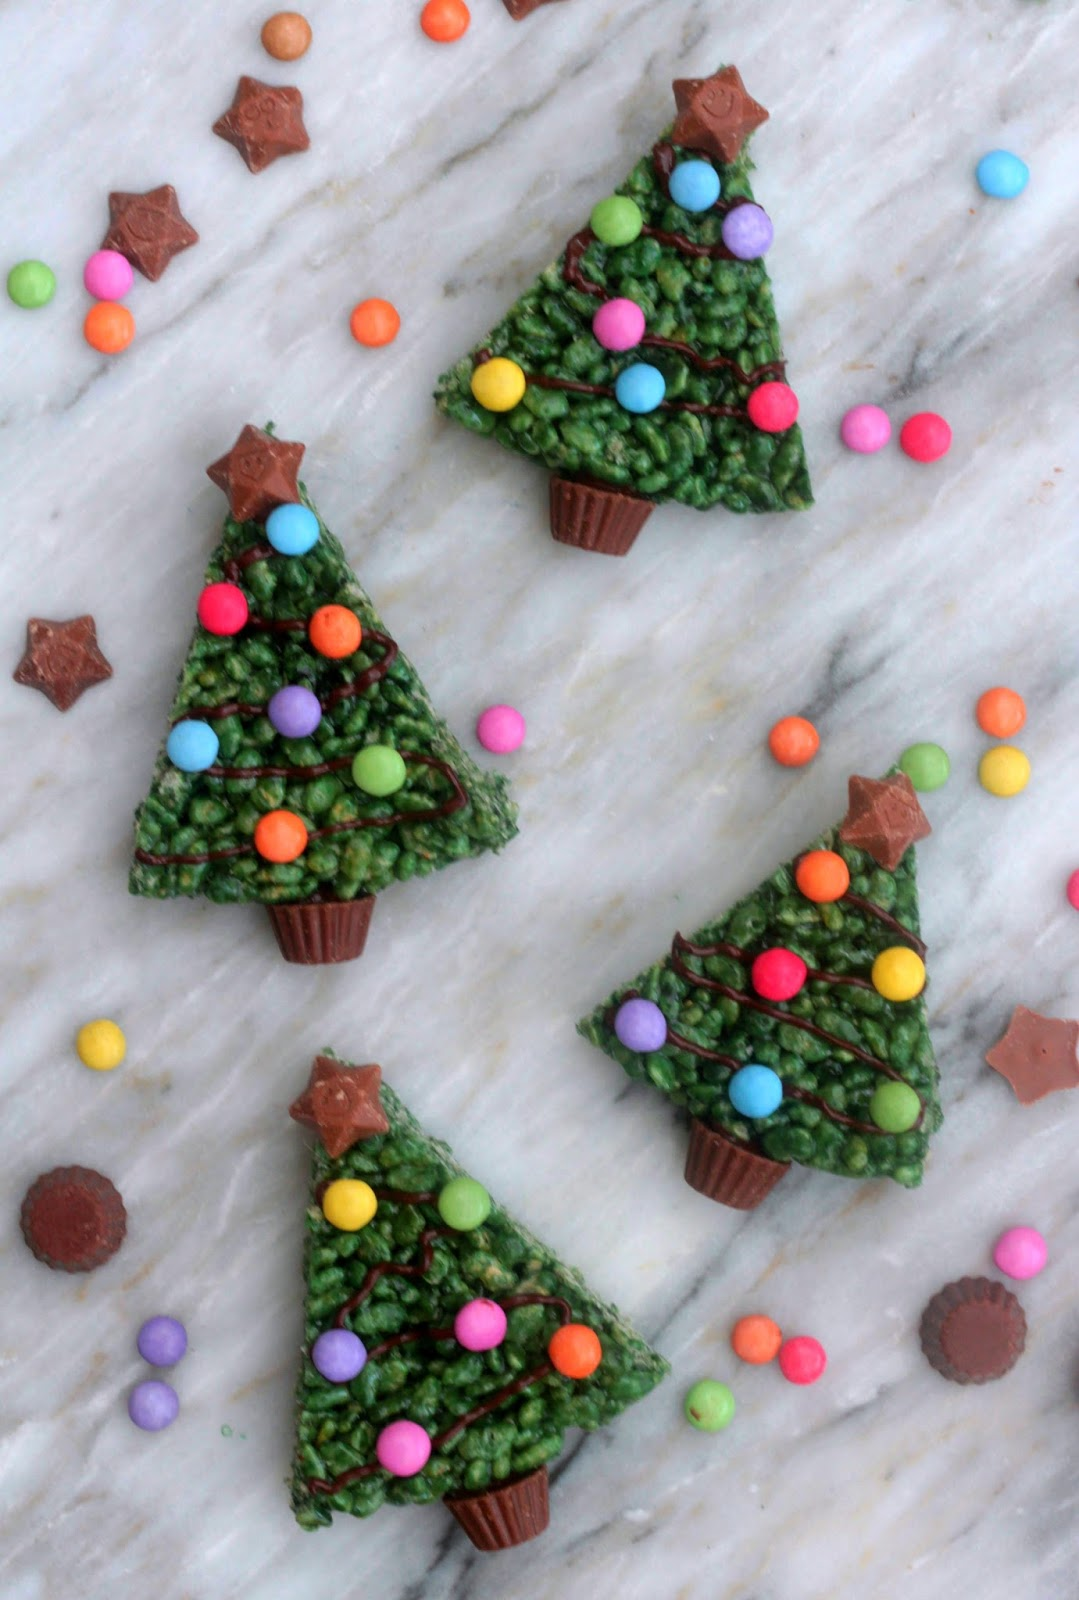 Gently press marshmallows together as you build the tree. Continue this process, making rows of 4, 3, 2 and 1. Add the final marshmallow to the base of the tree. Keep excess chocolate. Place in the freezer for 10 minutes. Take marshmallow Christmas tree out of the freezer and peel off baking paper.